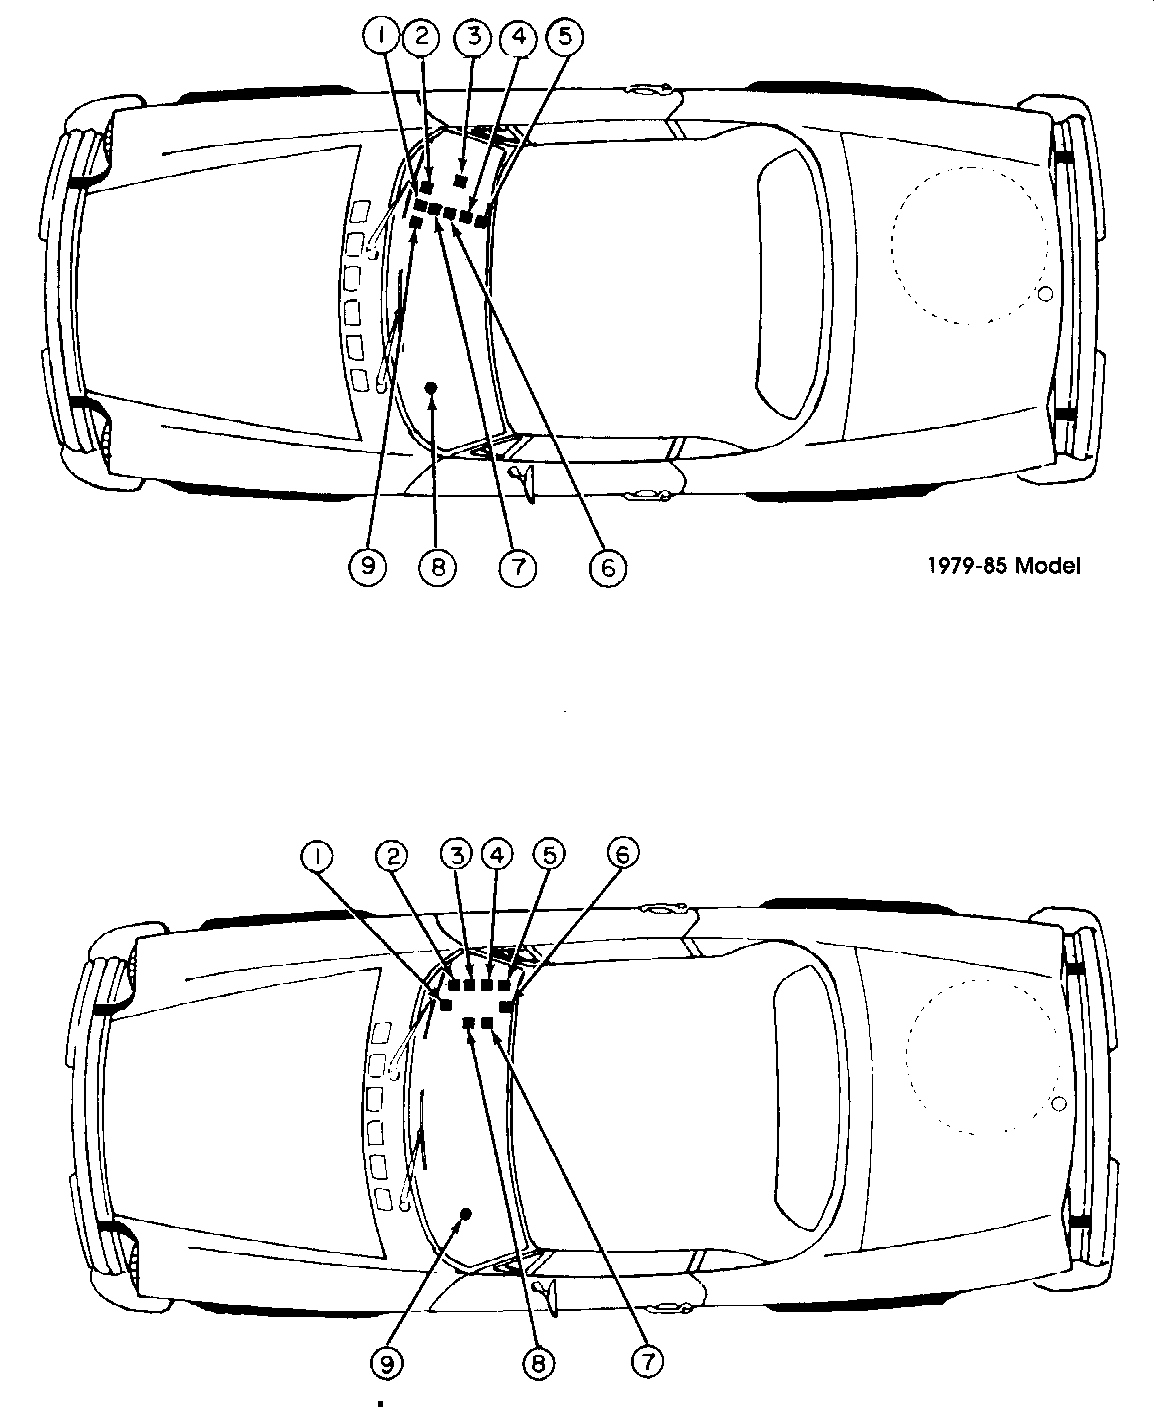 Fiat Seicento Fuse Box Electrical Wiring Diagrams Cinquecento Layout 12 500 Diagram Trusted New